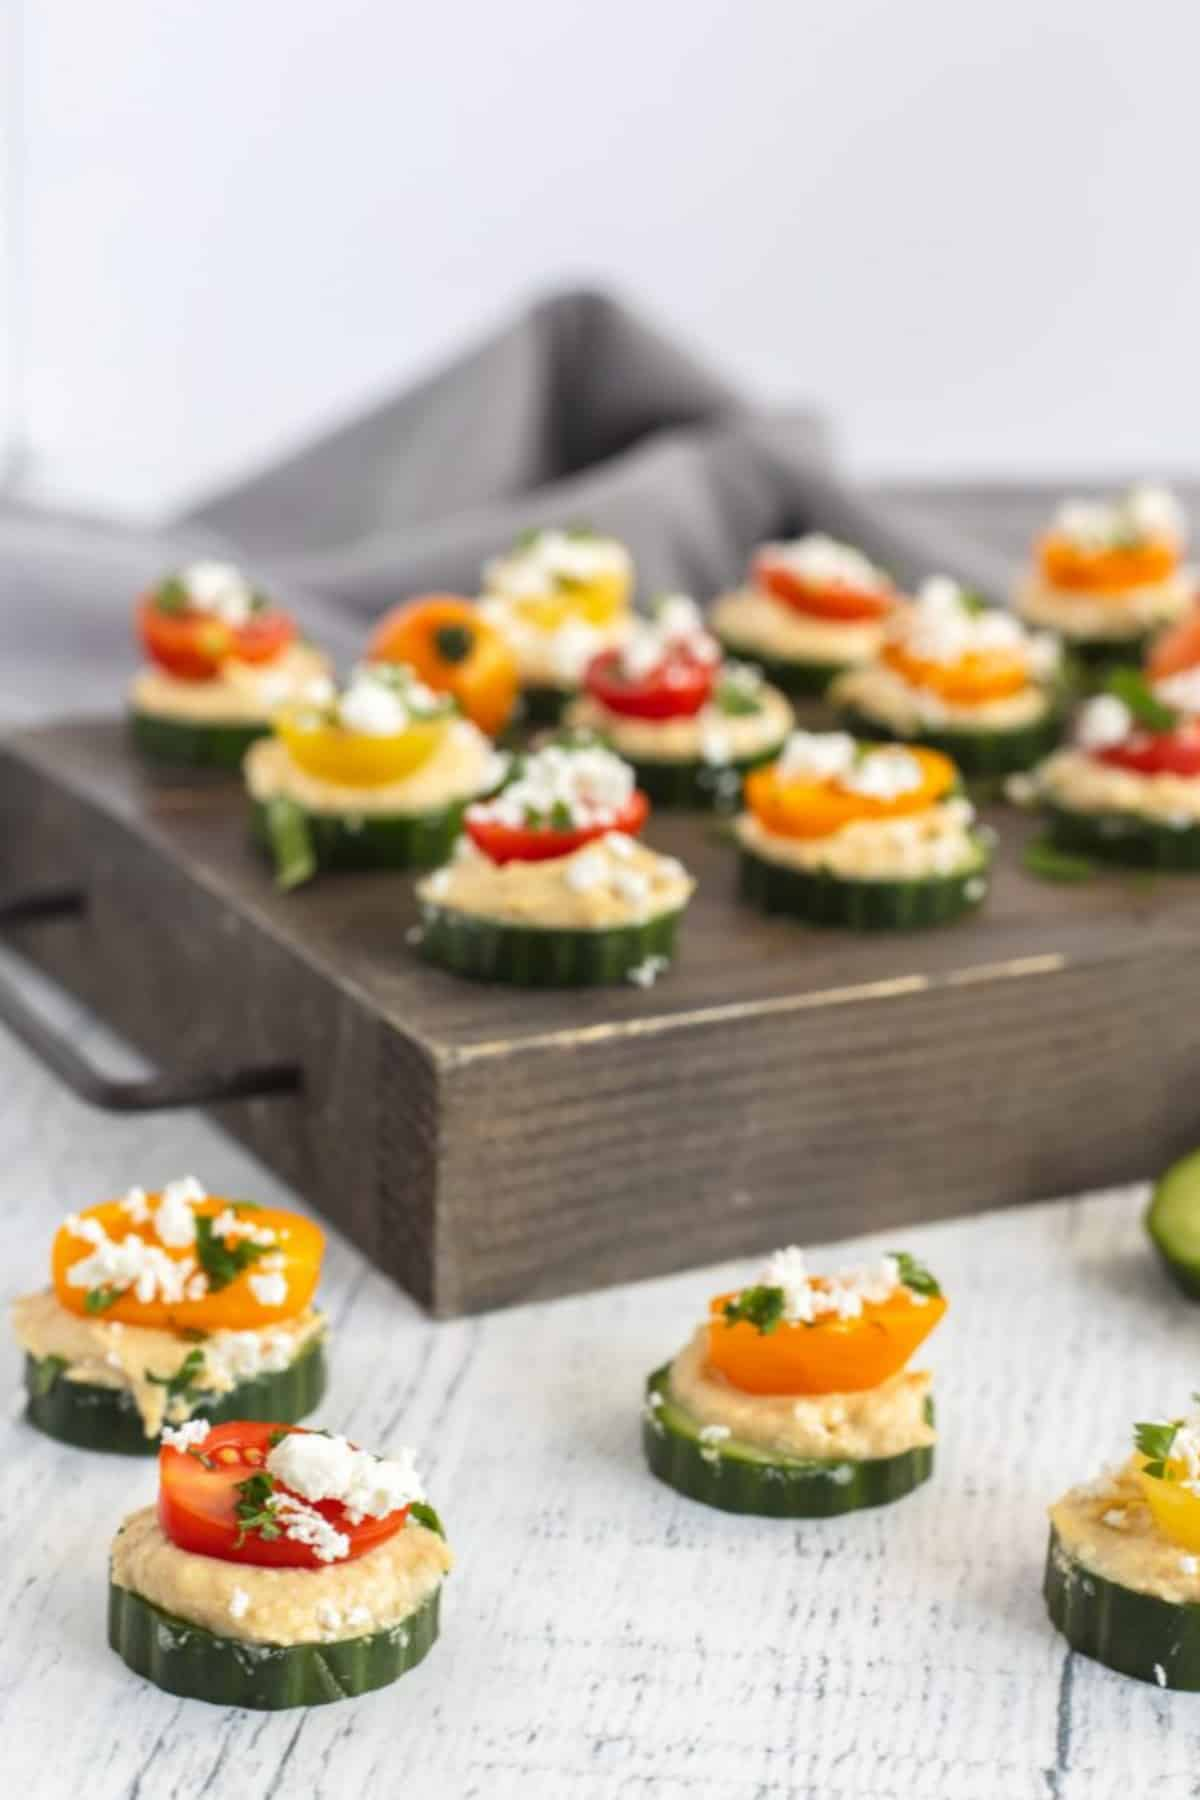 Cucumber hummus bites on a wooden board and wooden counter top.